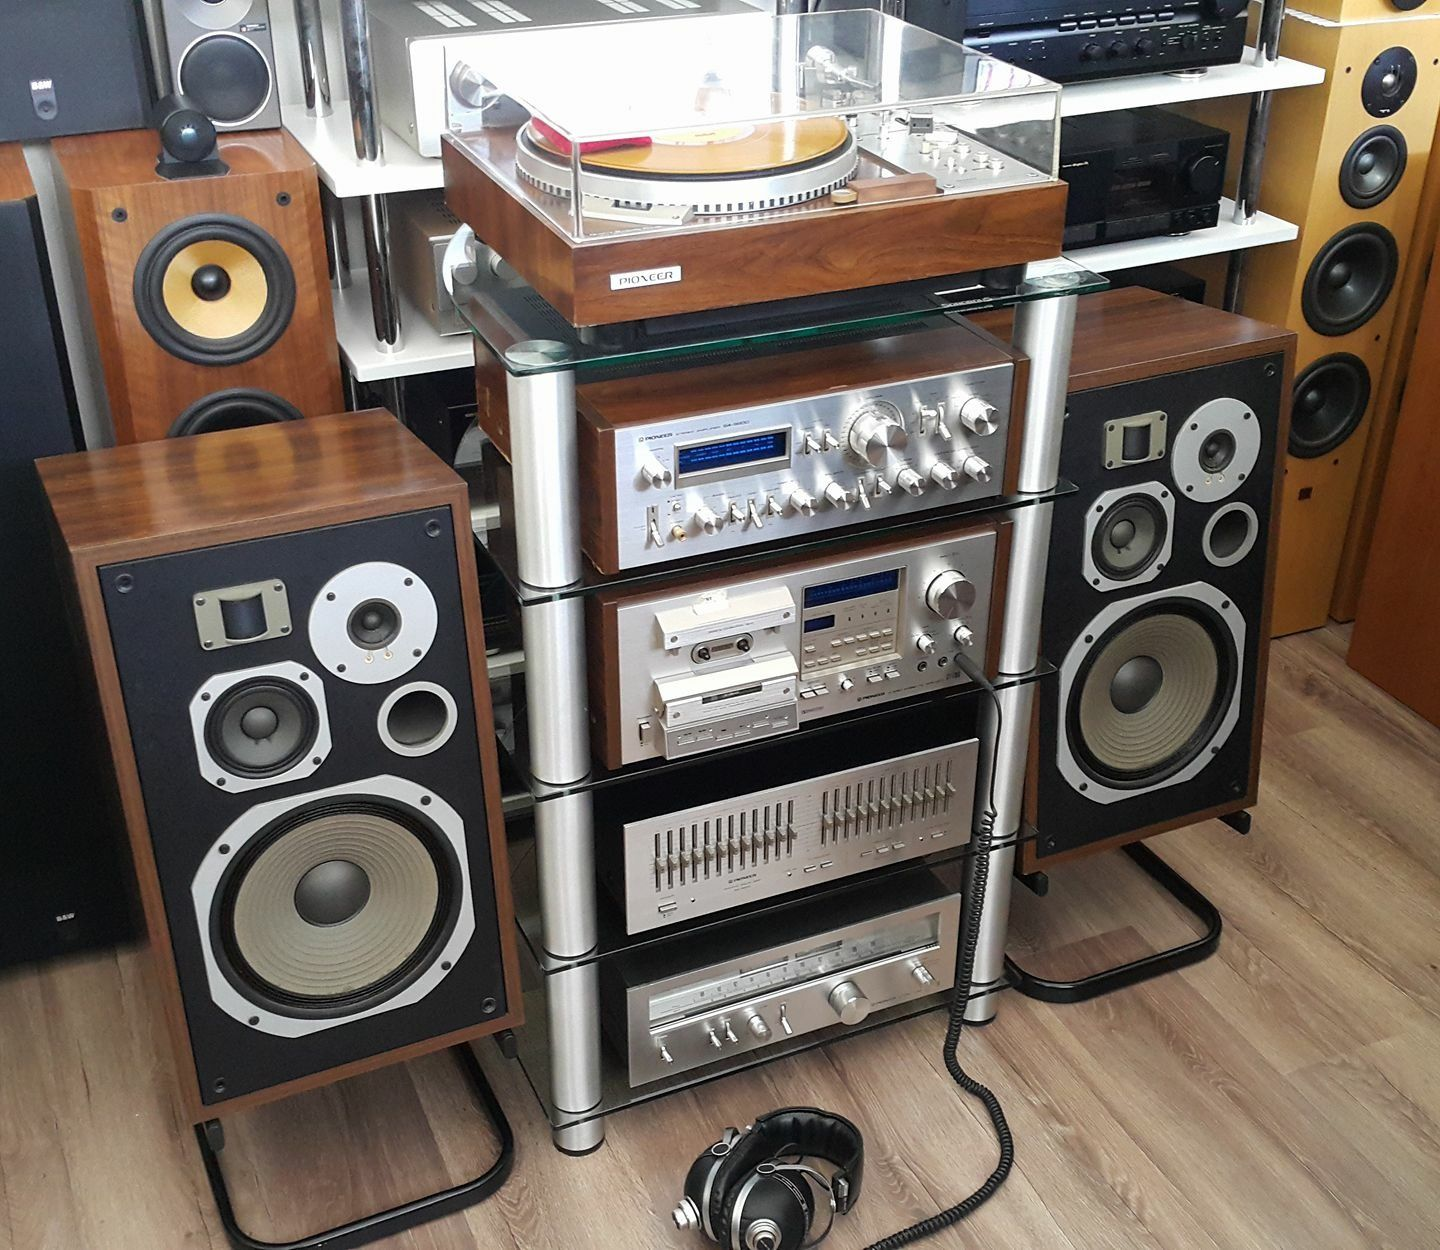 Thus Is What Dreams Are Made And Where The Passion Started Hifi Audio Audio Room Pioneer Audio